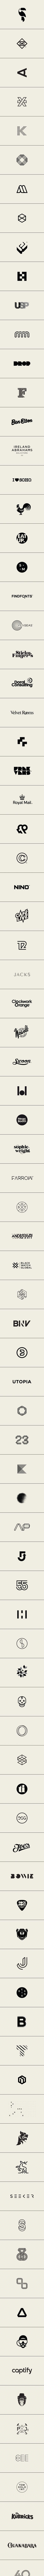 100+ Marques & Logotypes by Mash Creative.